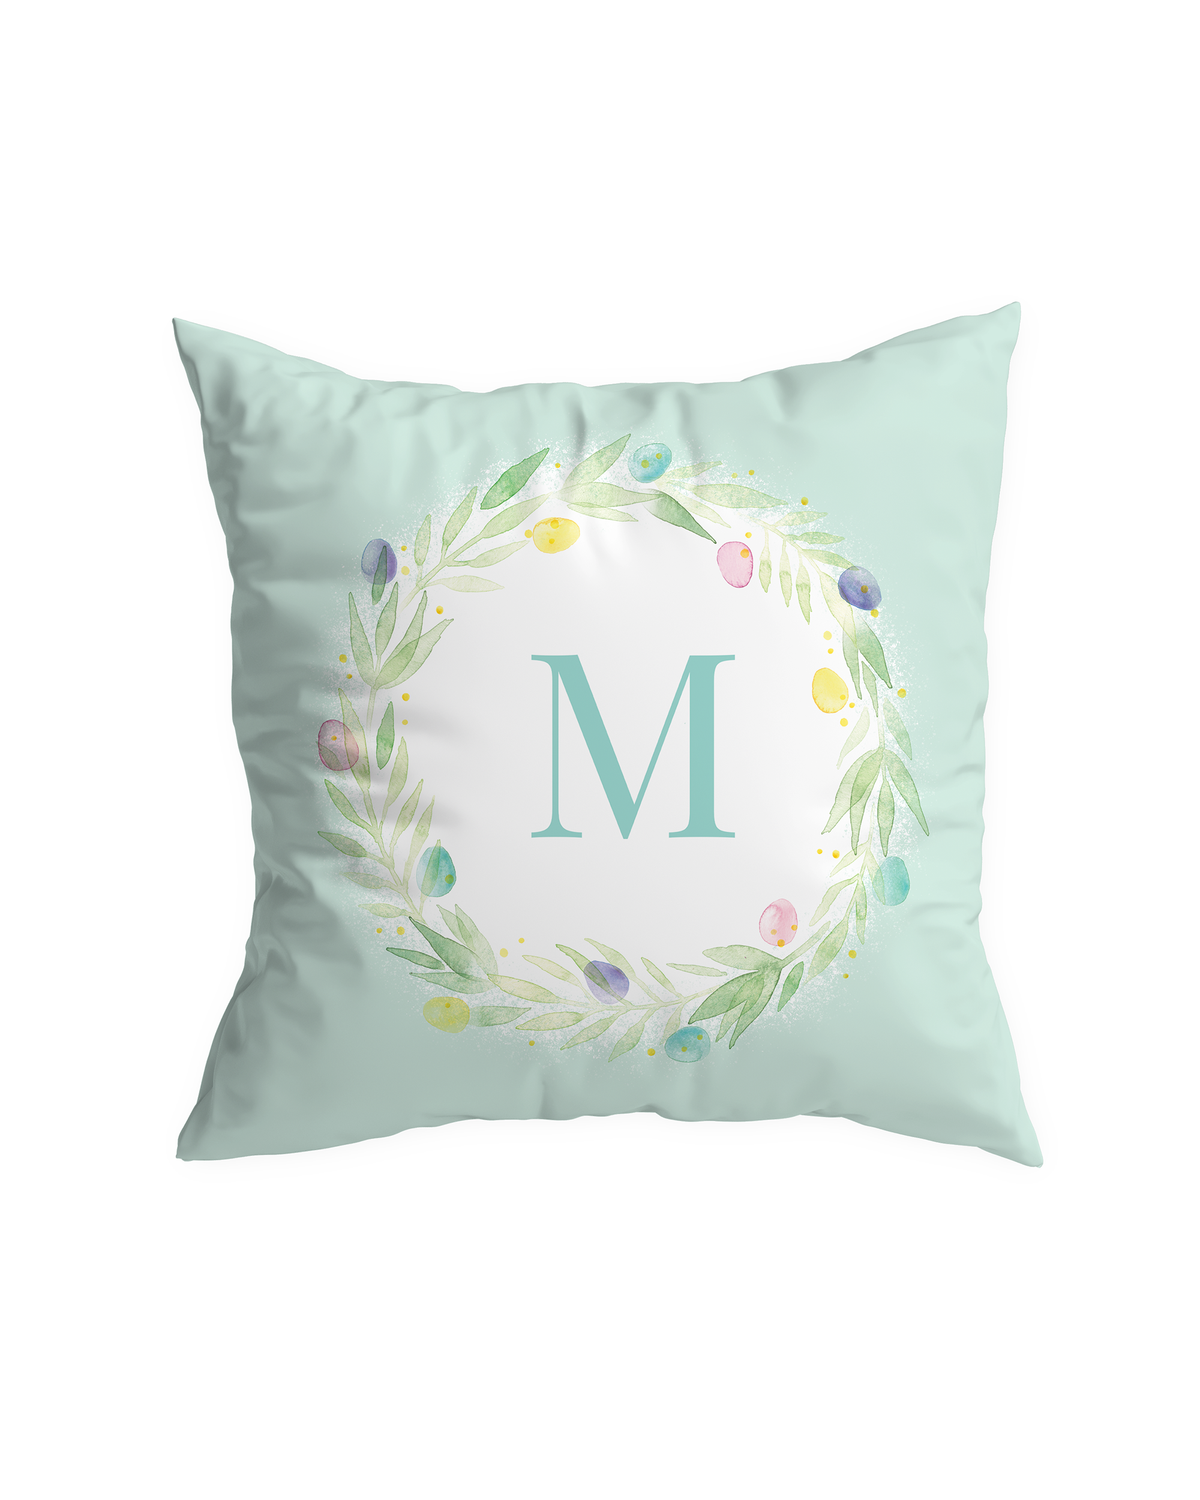 Easter Egg Wreath Pillow Cover with Monogram